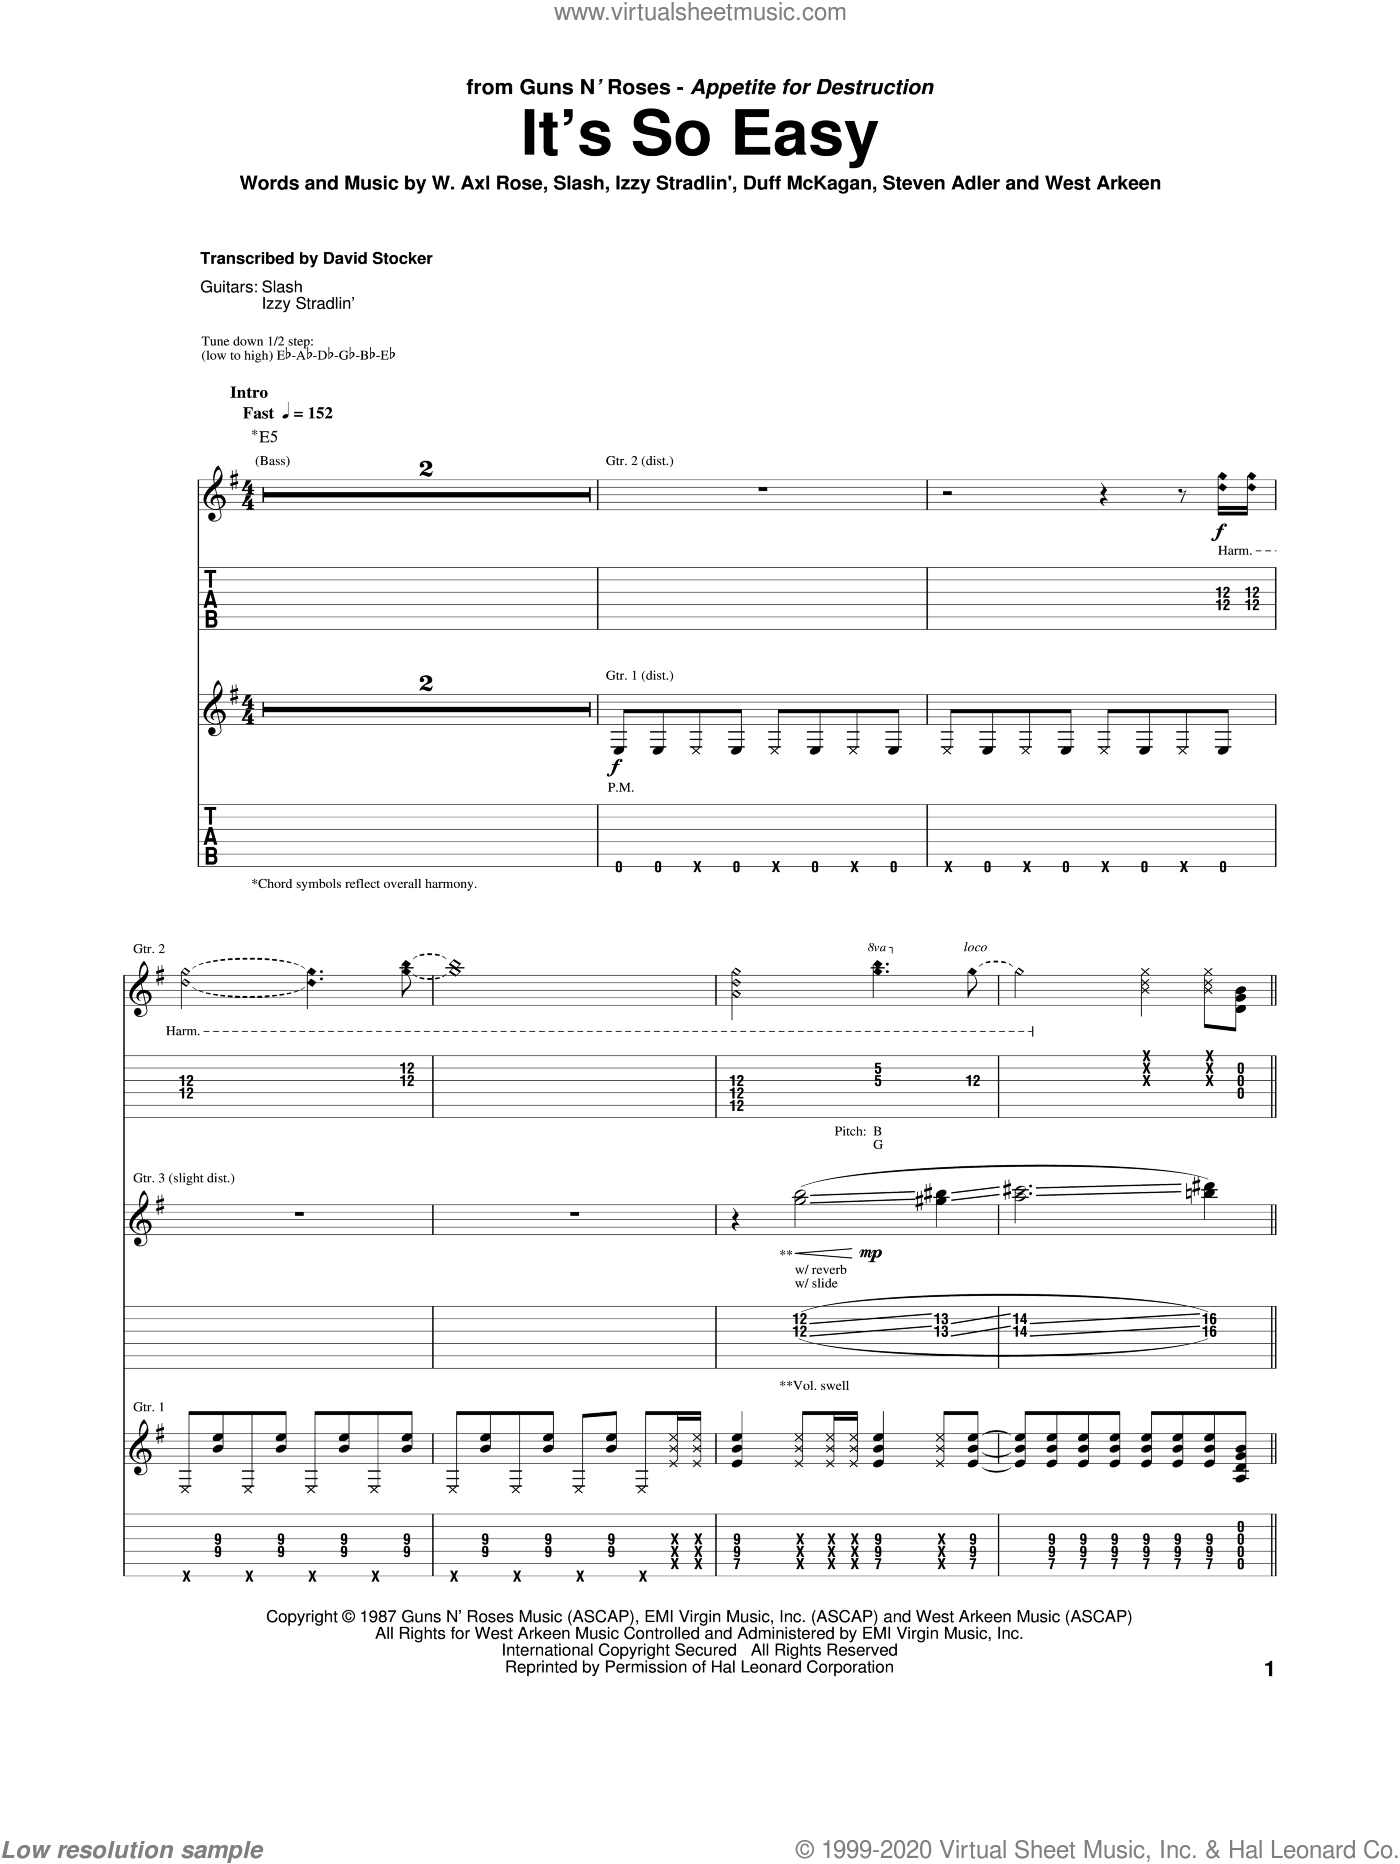 It's So Easy sheet music for guitar (tablature) by West Arkeen, Axl Rose, Duff McKagan, Izzy Stradlin, Slash and Steven Adler. Score Image Preview.